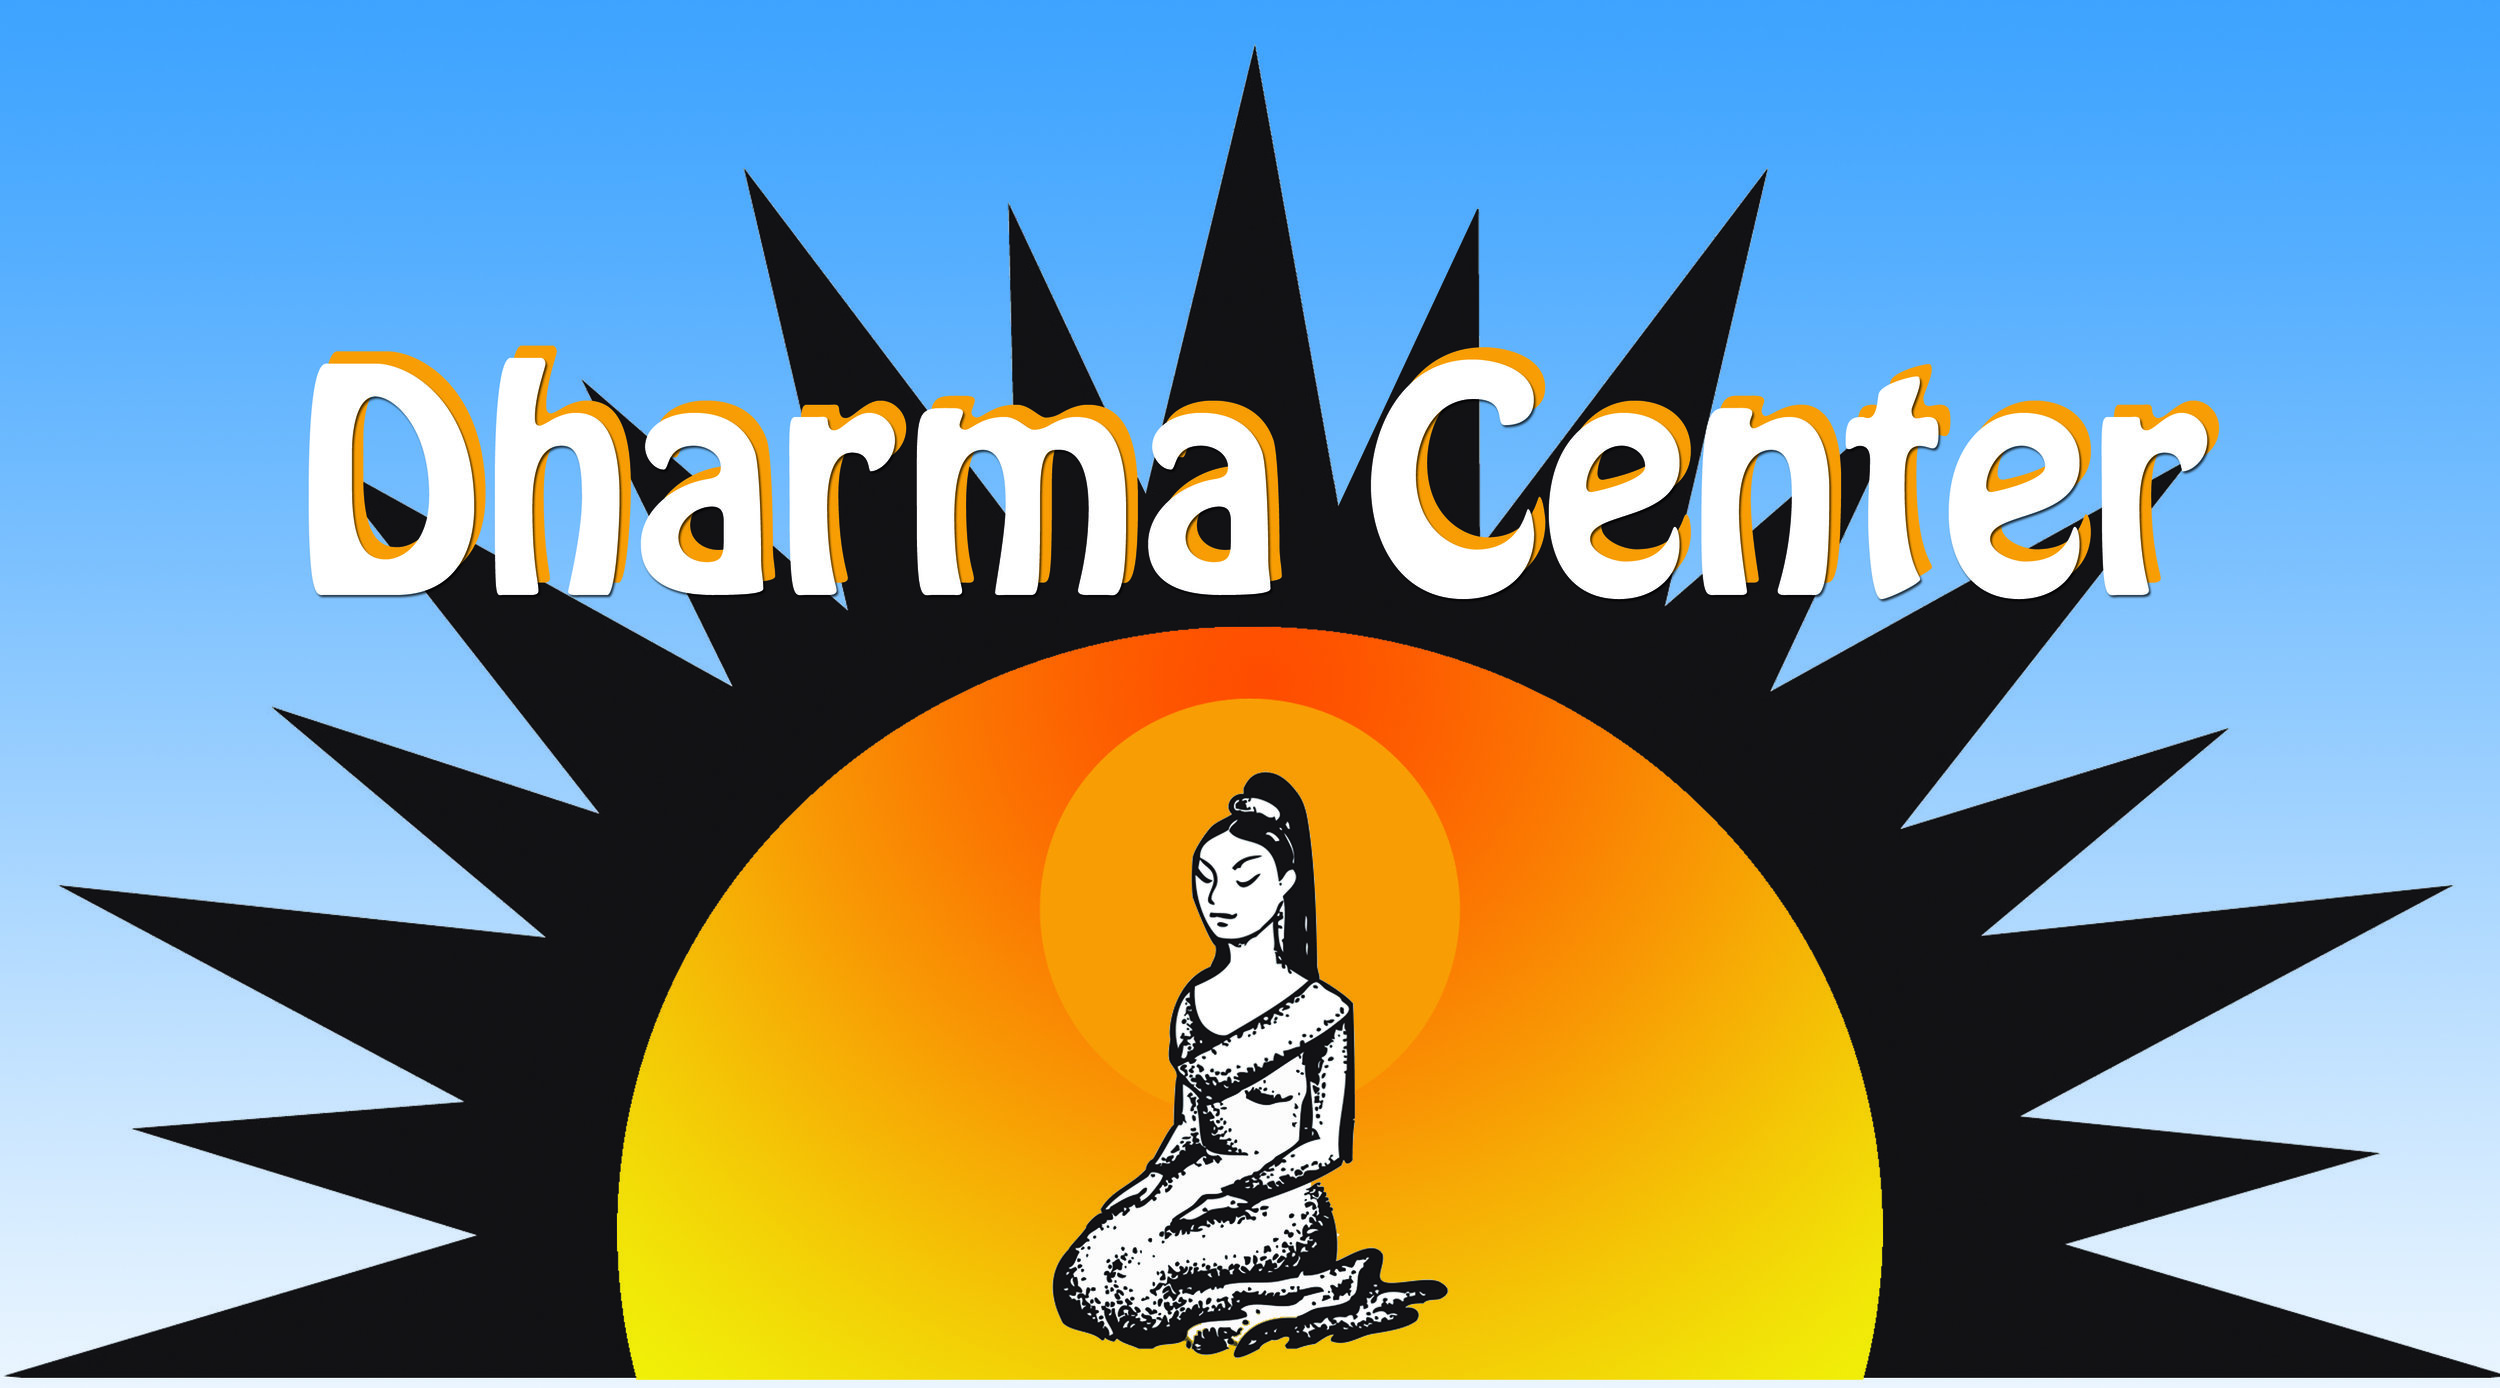 Dharma Center offers meditation classes with various Teachers who have studied with Rama - Dr. Frederick Lenz and Turīya - Jenna Sundell in American and Trikaya Buddhism.